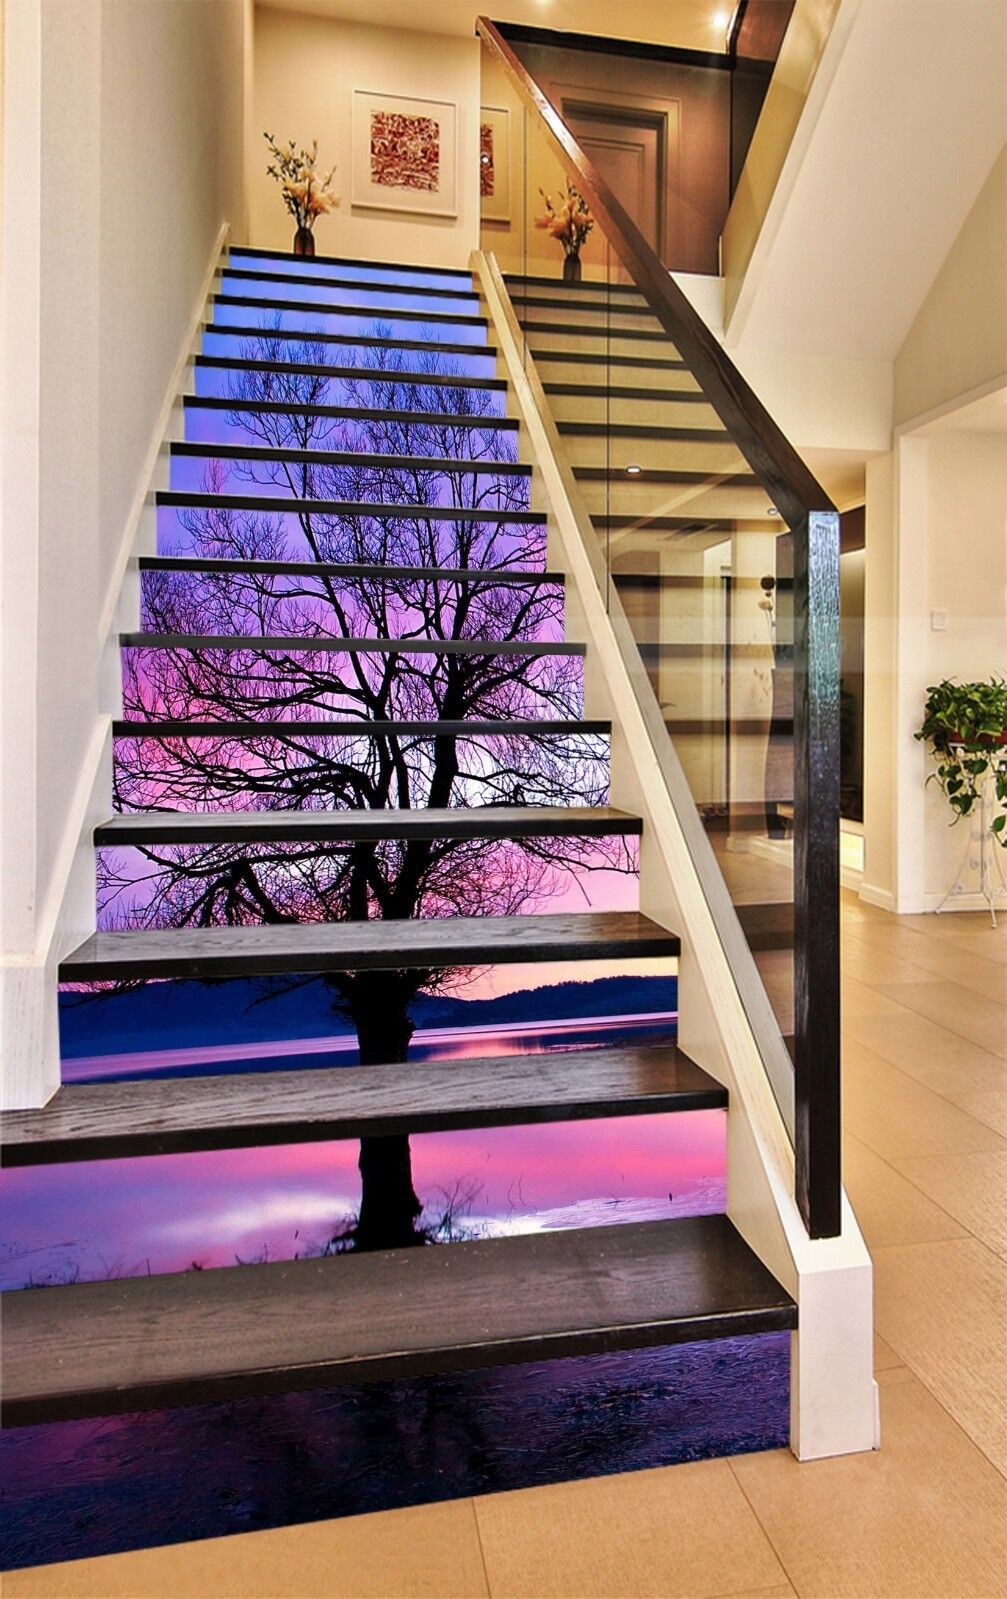 3D Branches River Stair Risers Decoration Photo Mural Vinyl Decal Wallpaper US